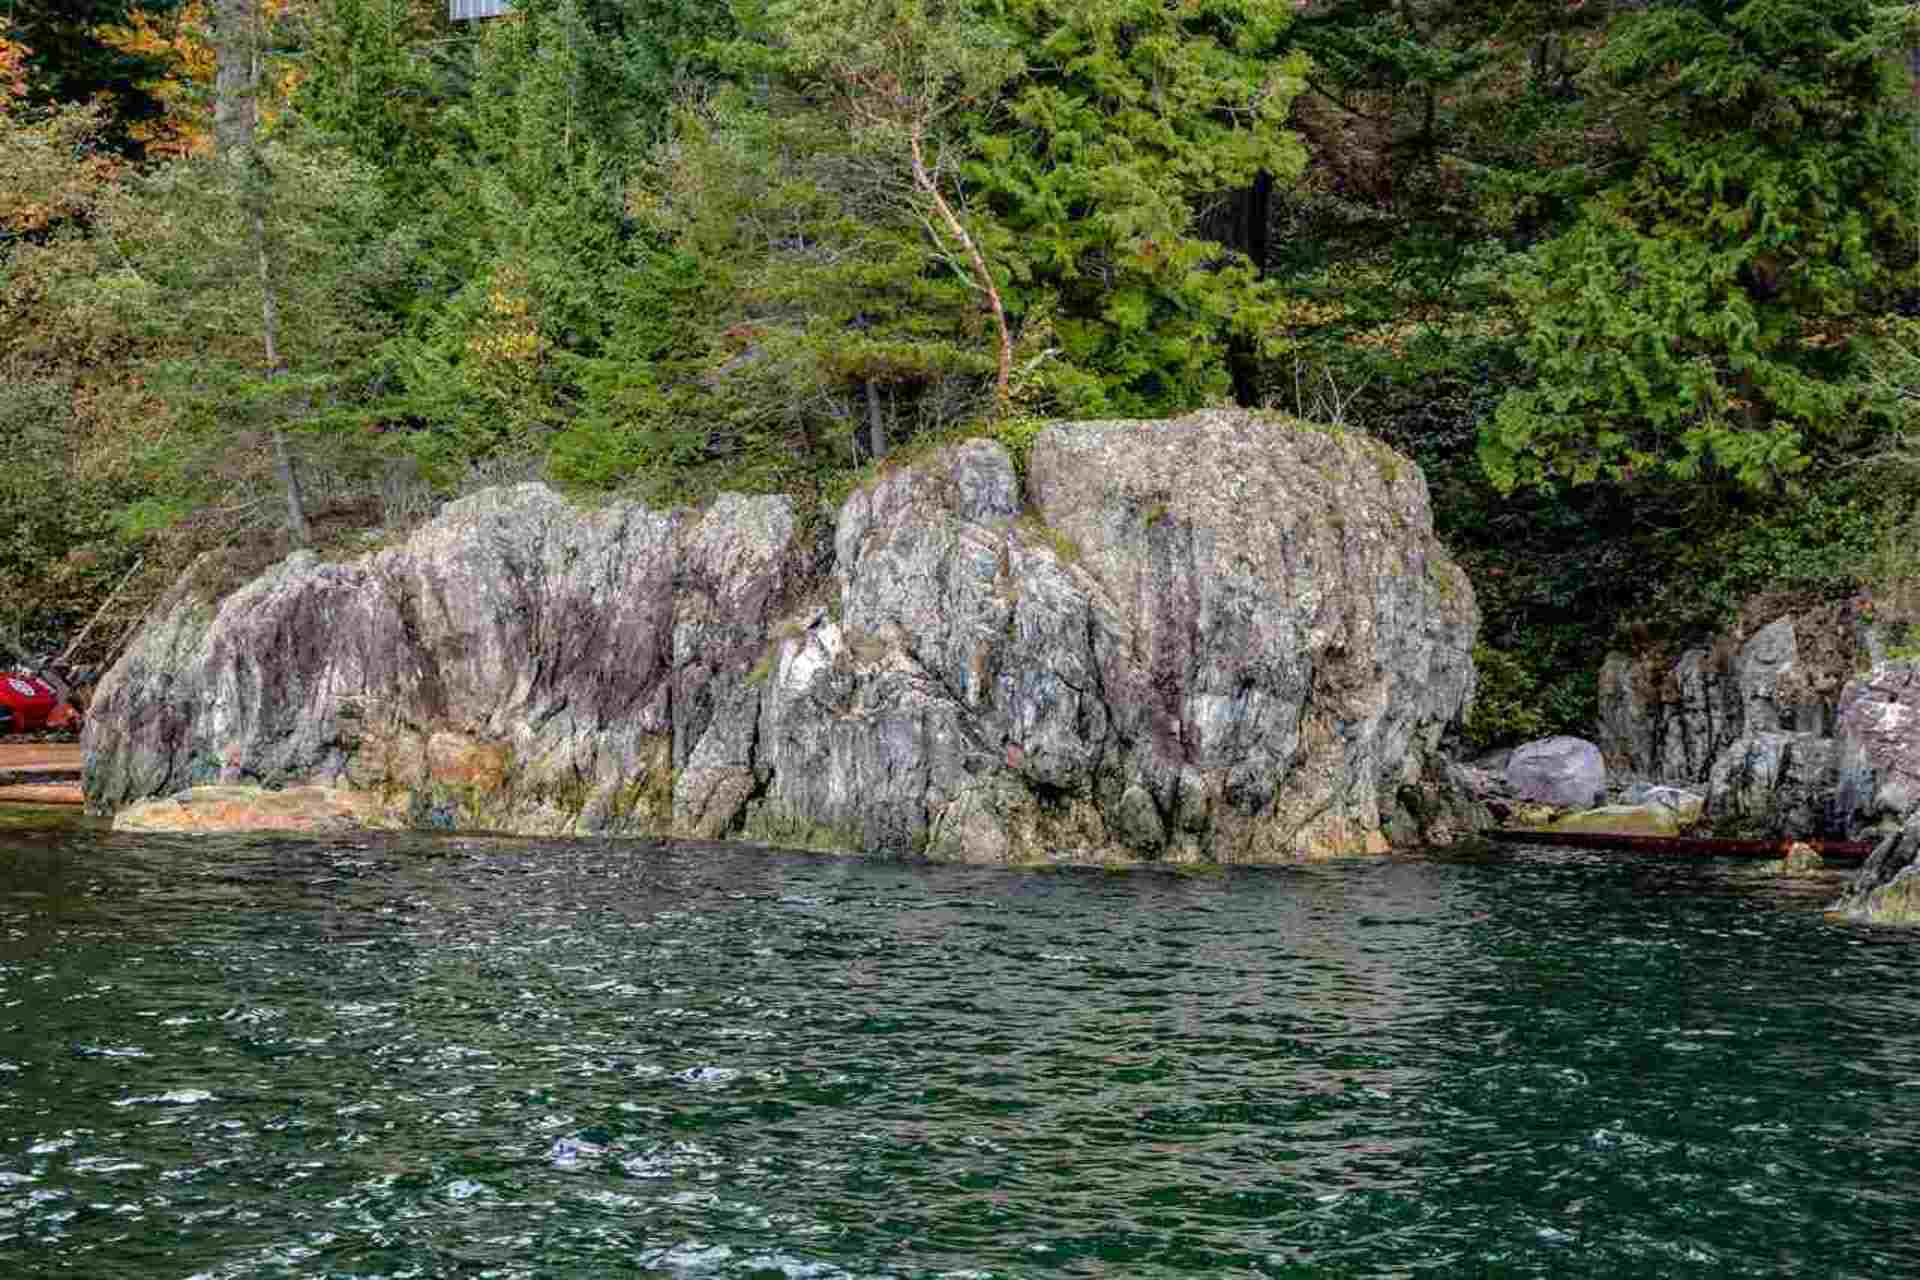 38-passage-island-howe-sound-west-vancouver-16 at 38 Passage Island, Howe Sound, West Vancouver